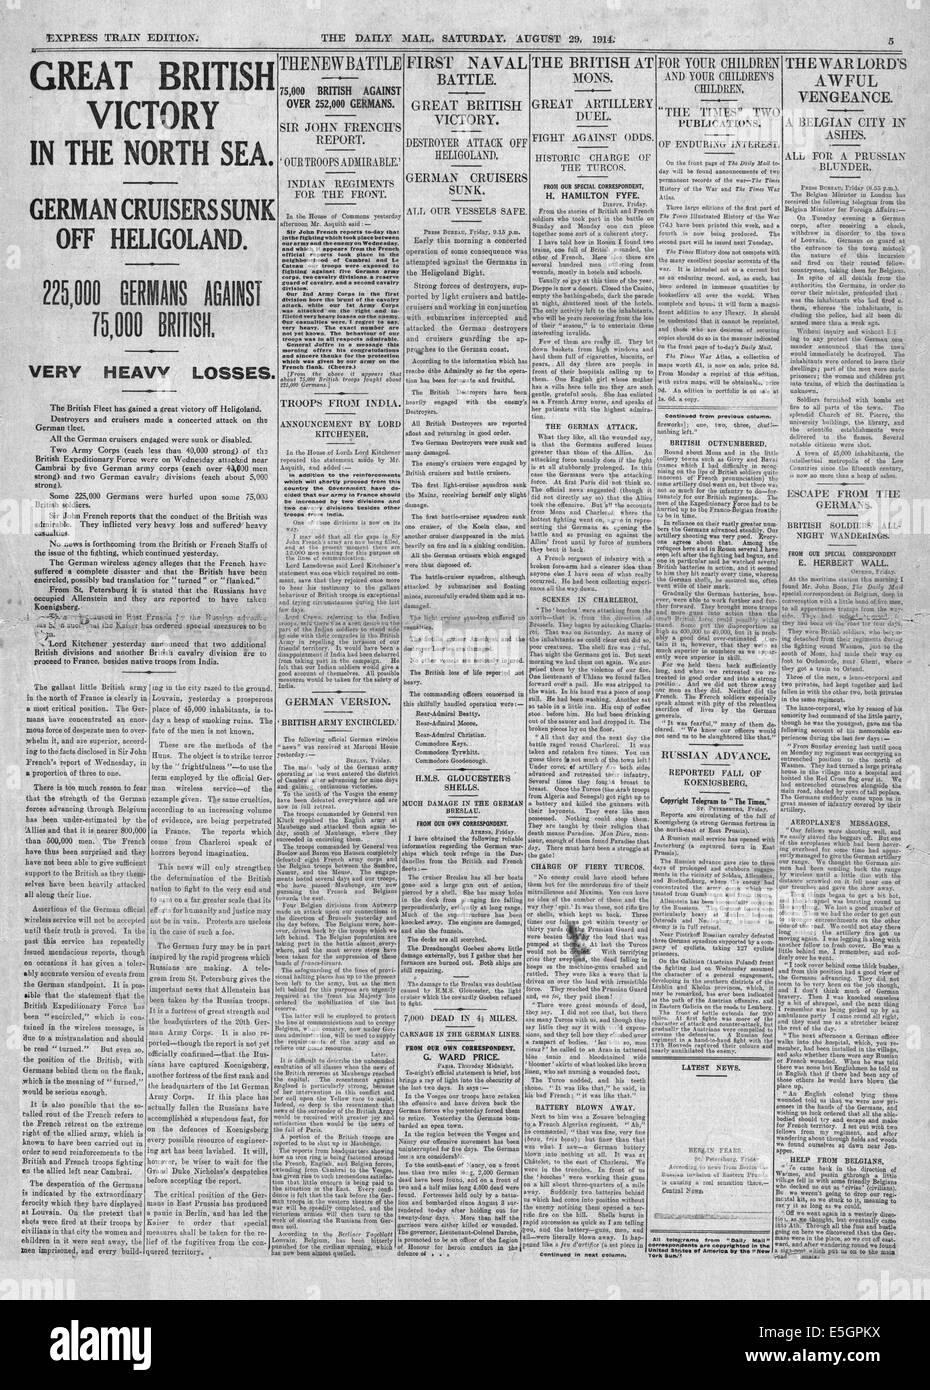 1914 Daily Mail page 5 reporting the sinking of German warships SMS Mainz, SMS Cöln and SMS Ariadne, destroyer V Stock Photo